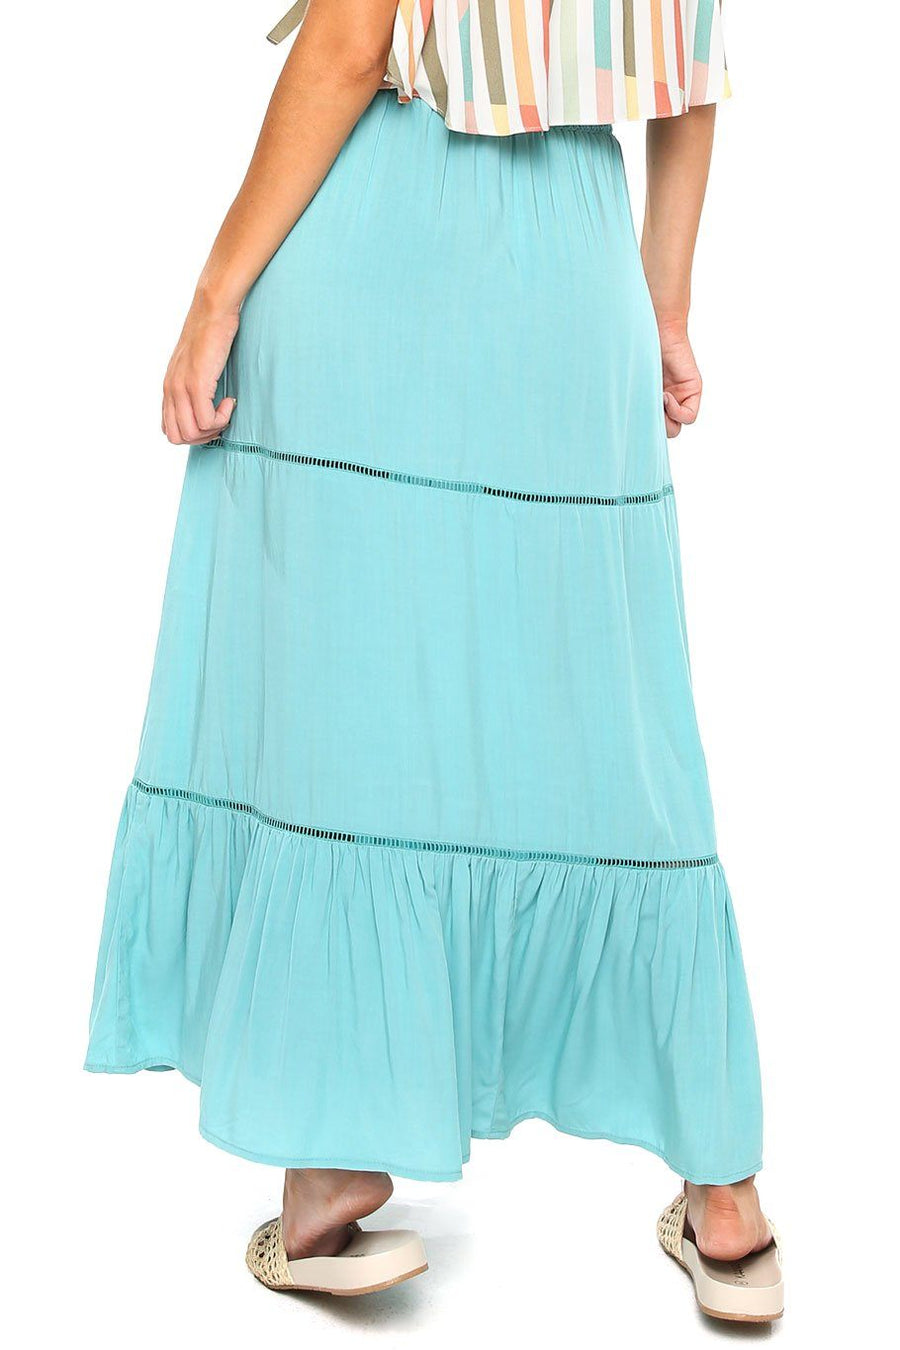 Opal Smocking Maxi Skirt - Seaglass - Shore